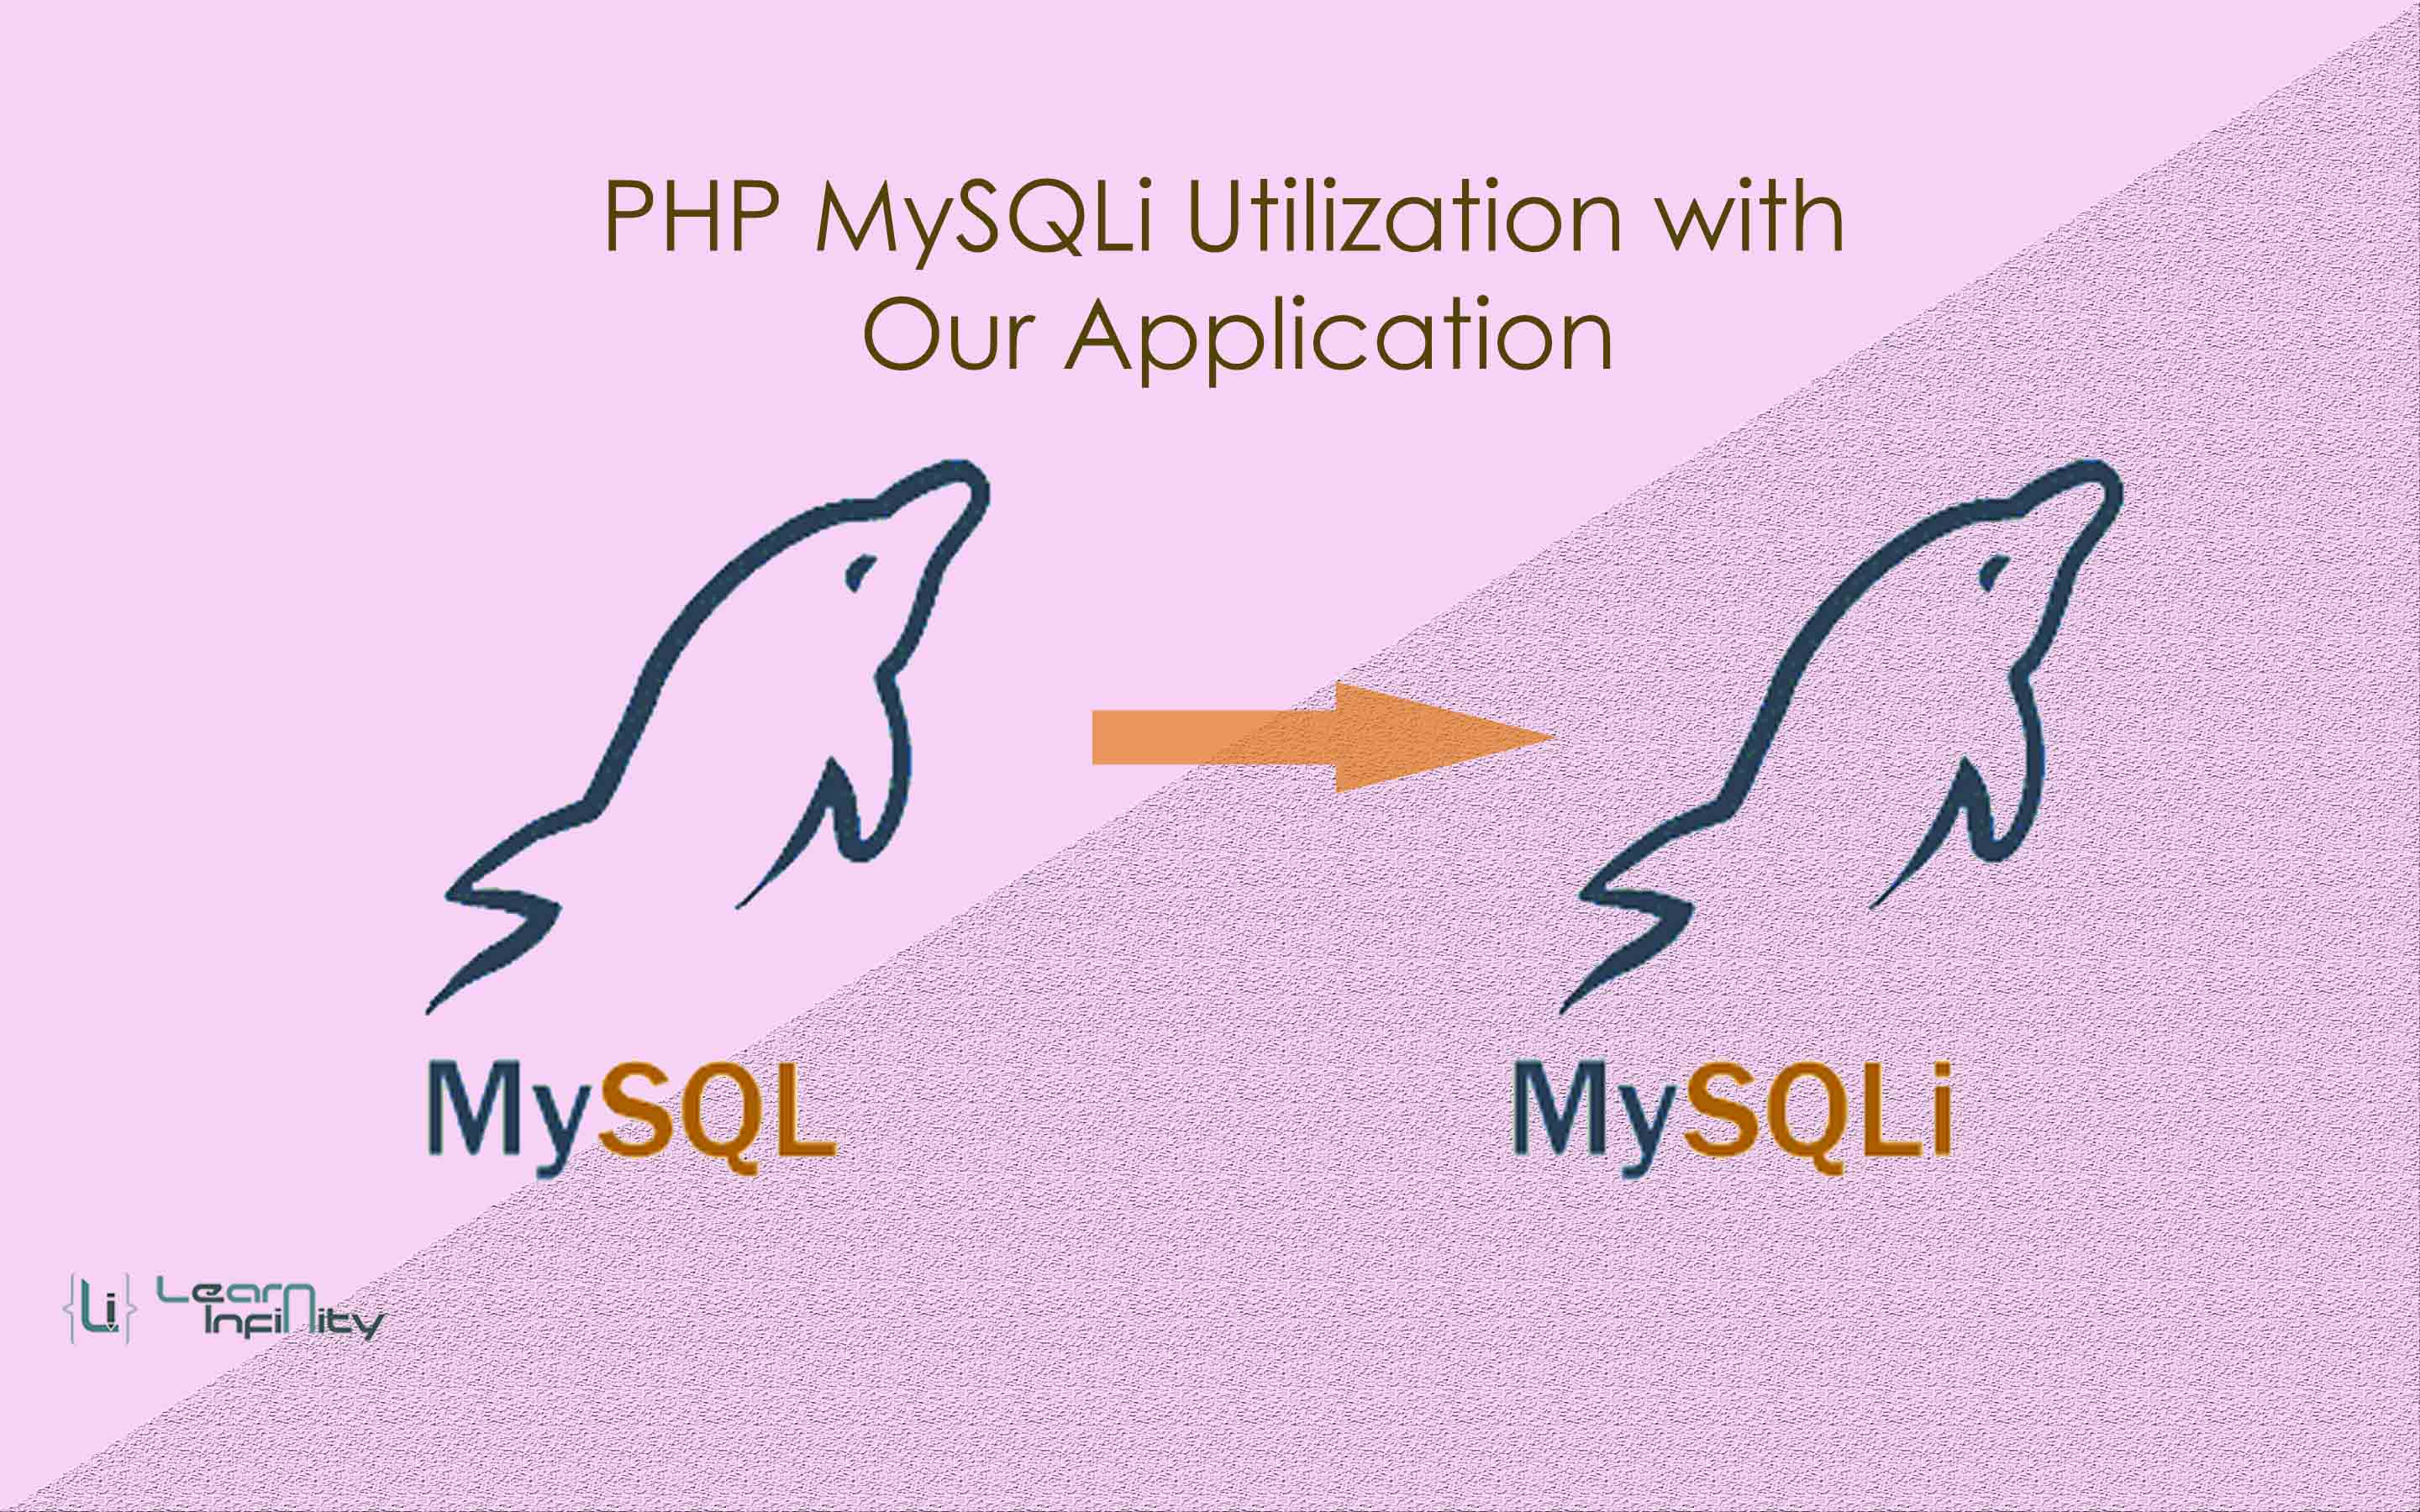 PHP MySQLi Utilization with Our Application